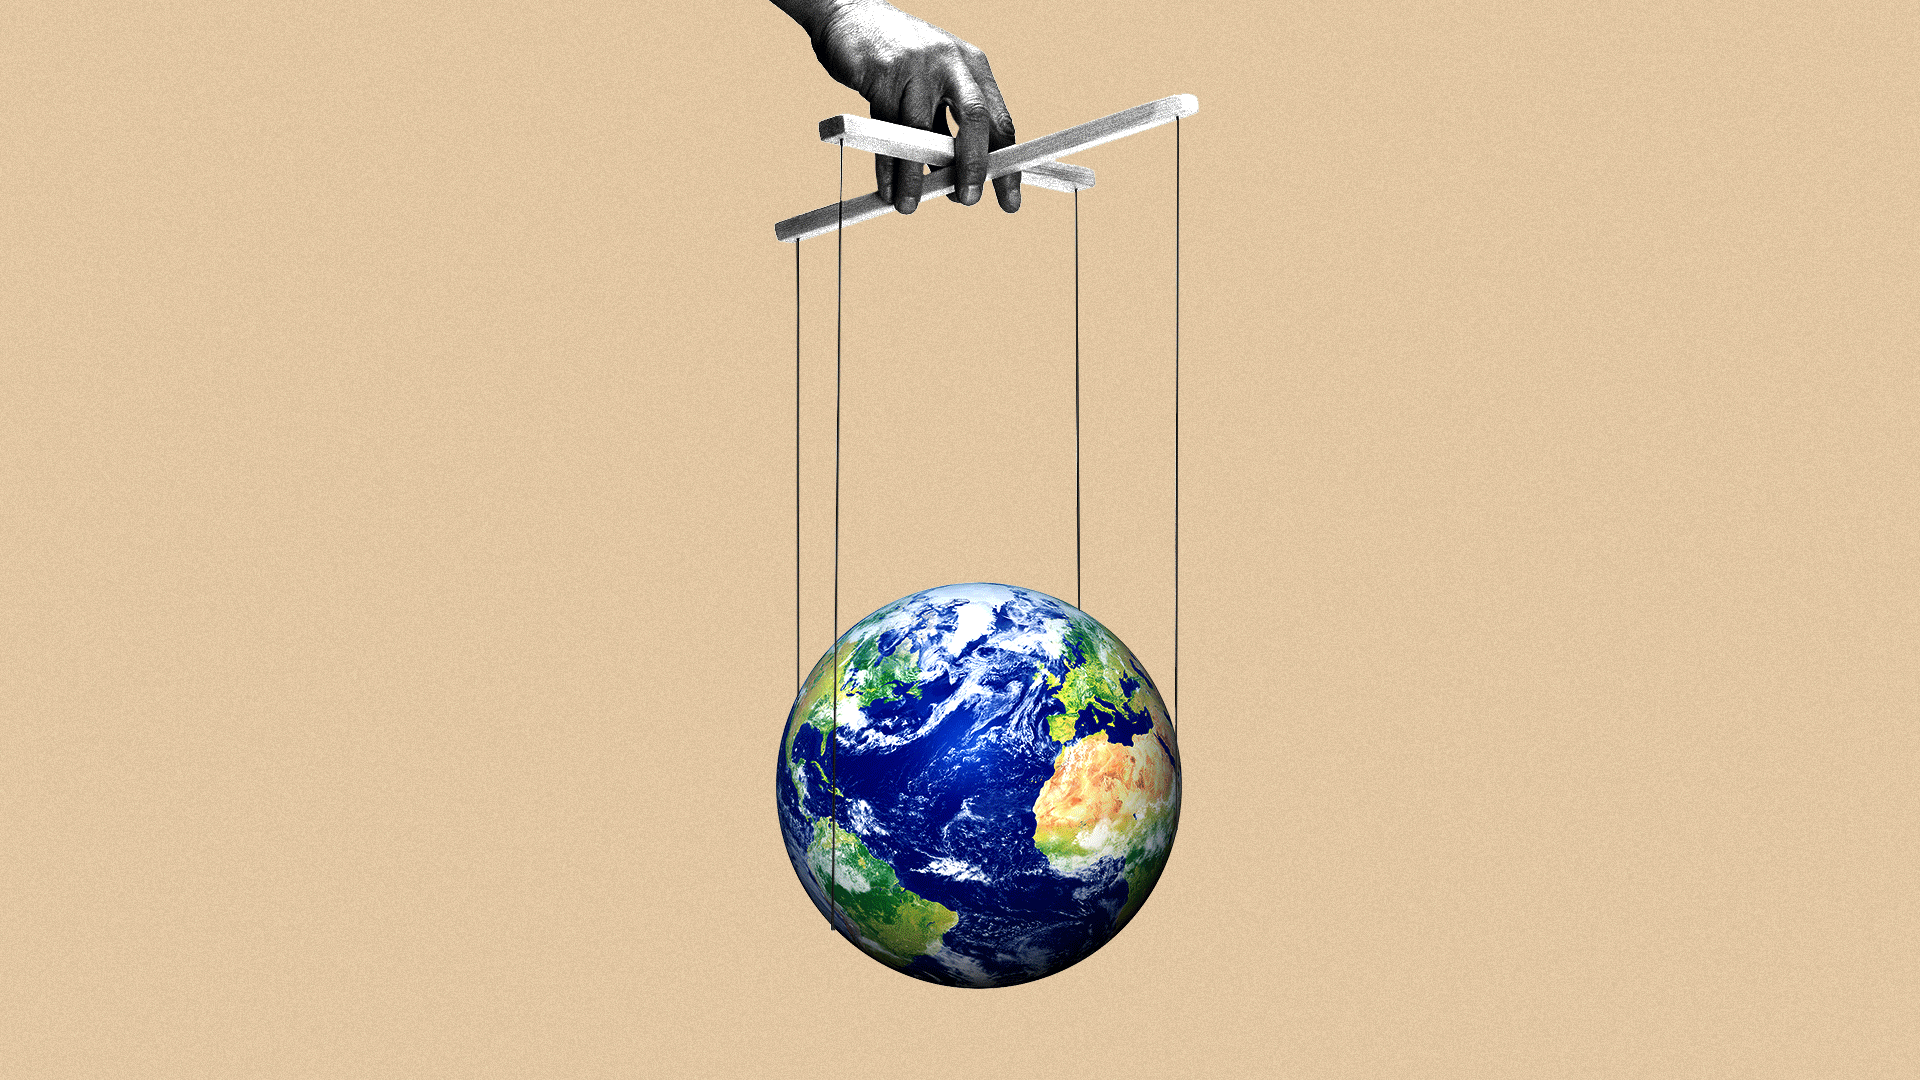 illustration of a marionette strings attached to a globe